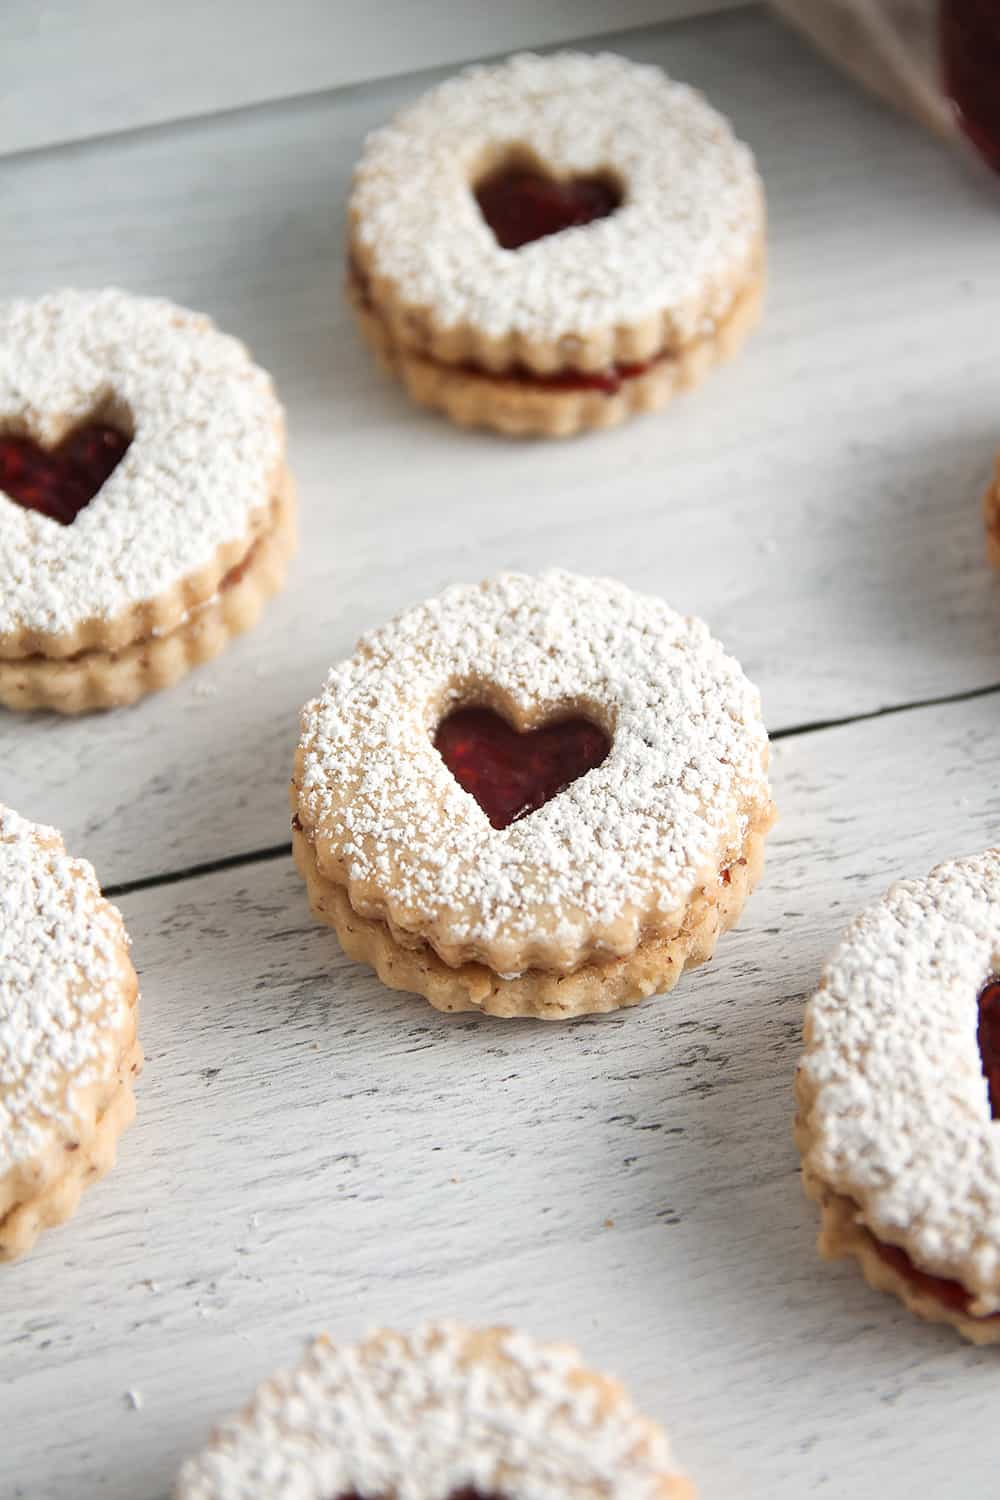 Raspberry jam gets sandwiched between two almond cookies to make traditional Raspberry Linzer Cookies.